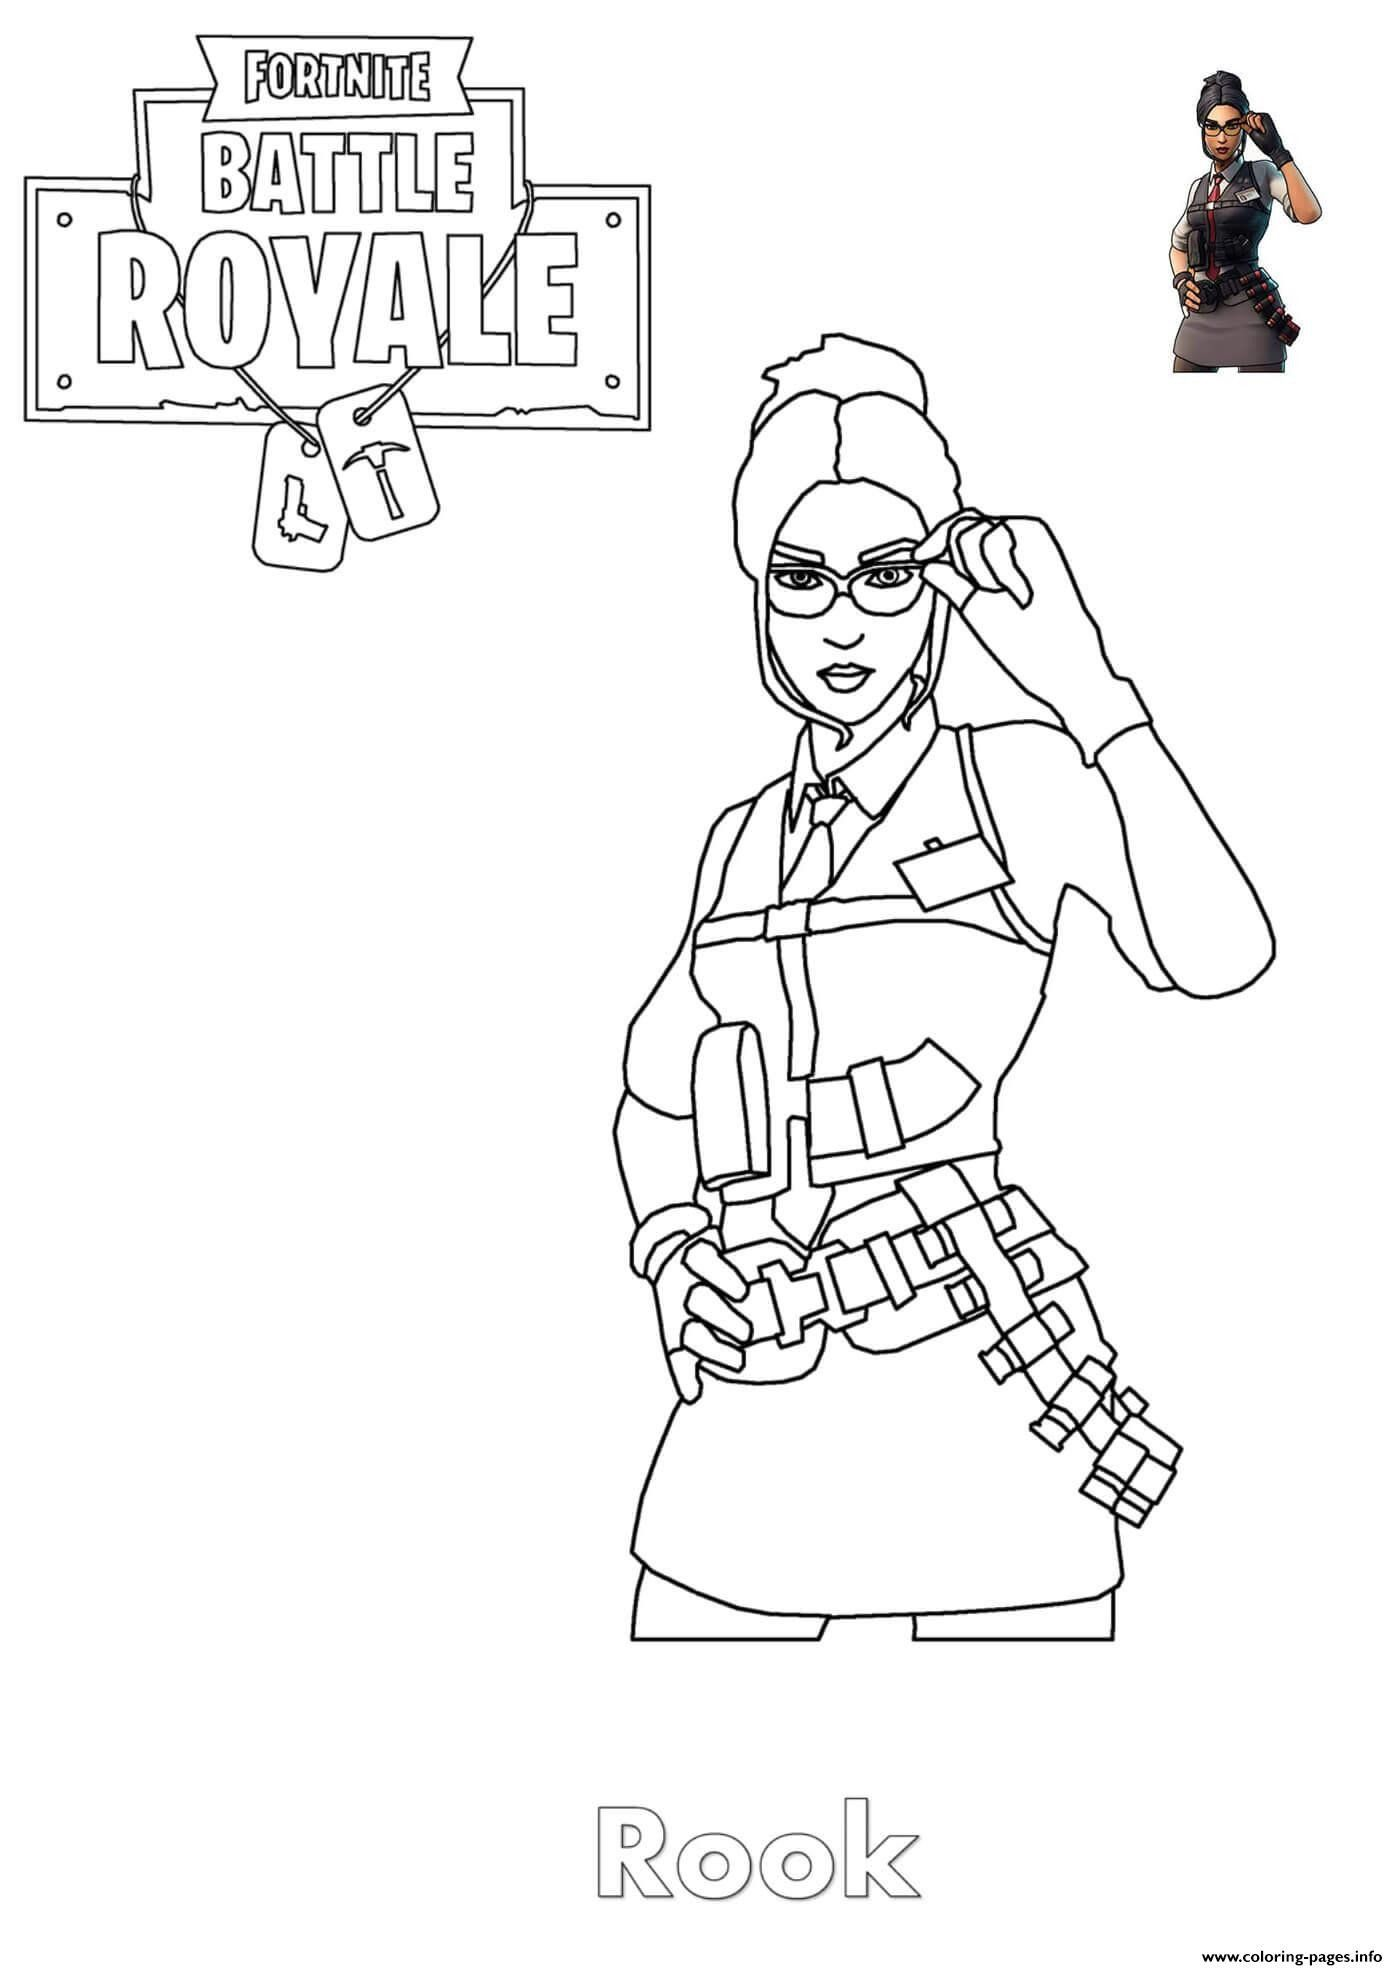 Coloring Pages for Girls Rook fortnite Girl Coloring Pages